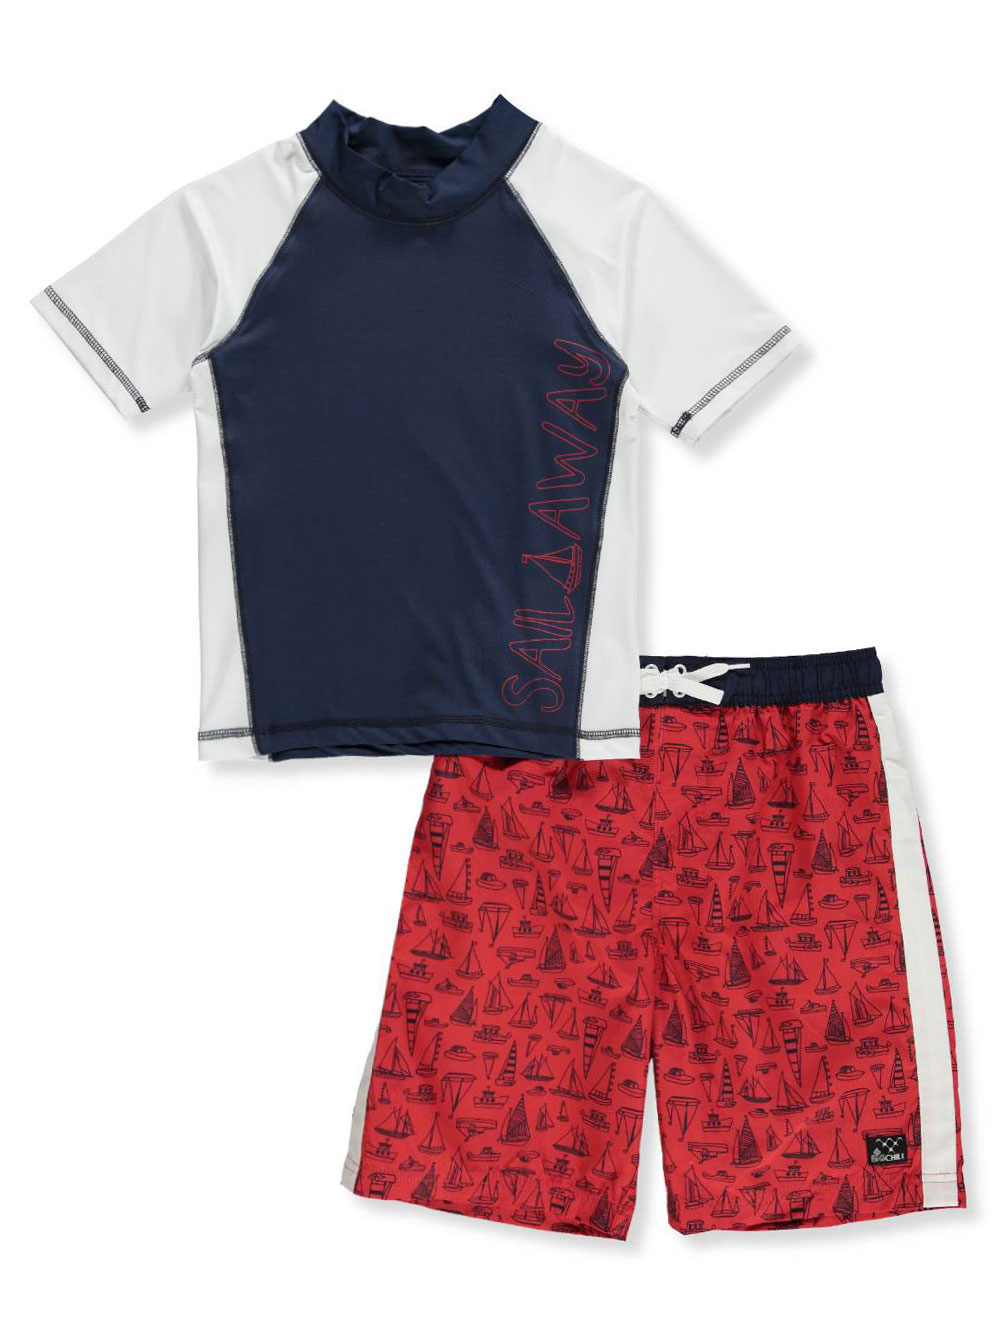 Big Chill Freestyle Boys' 2-Piece Swim Set